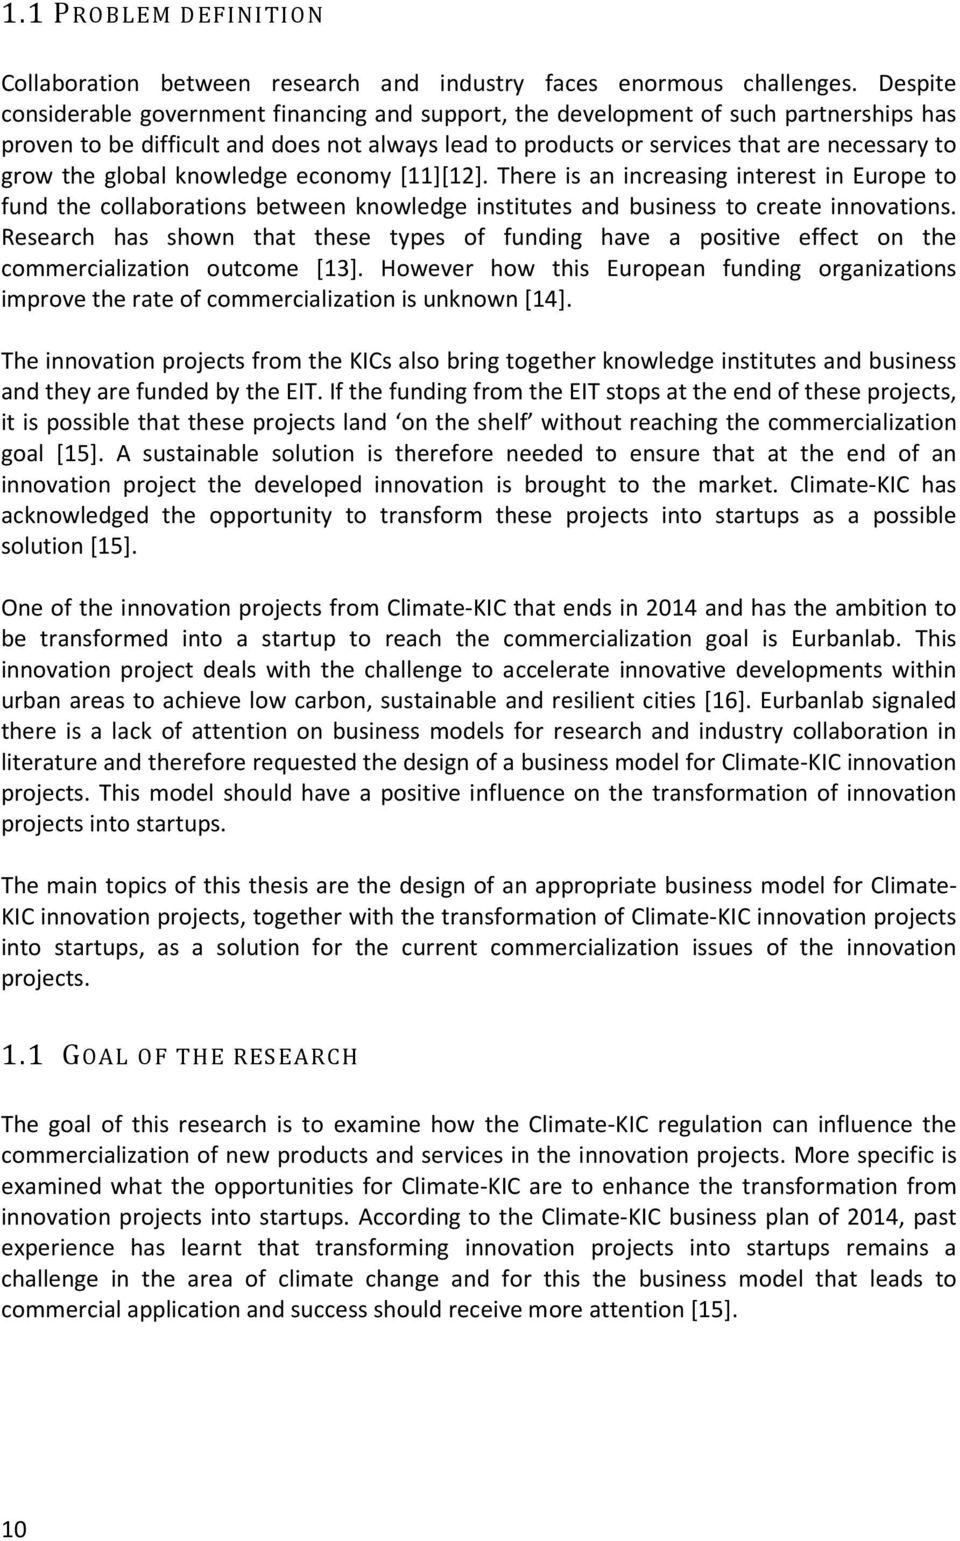 global knowledge economy [11][12]. There is an increasing interest in Europe to fund the collaborations between knowledge institutes and business to create innovations.